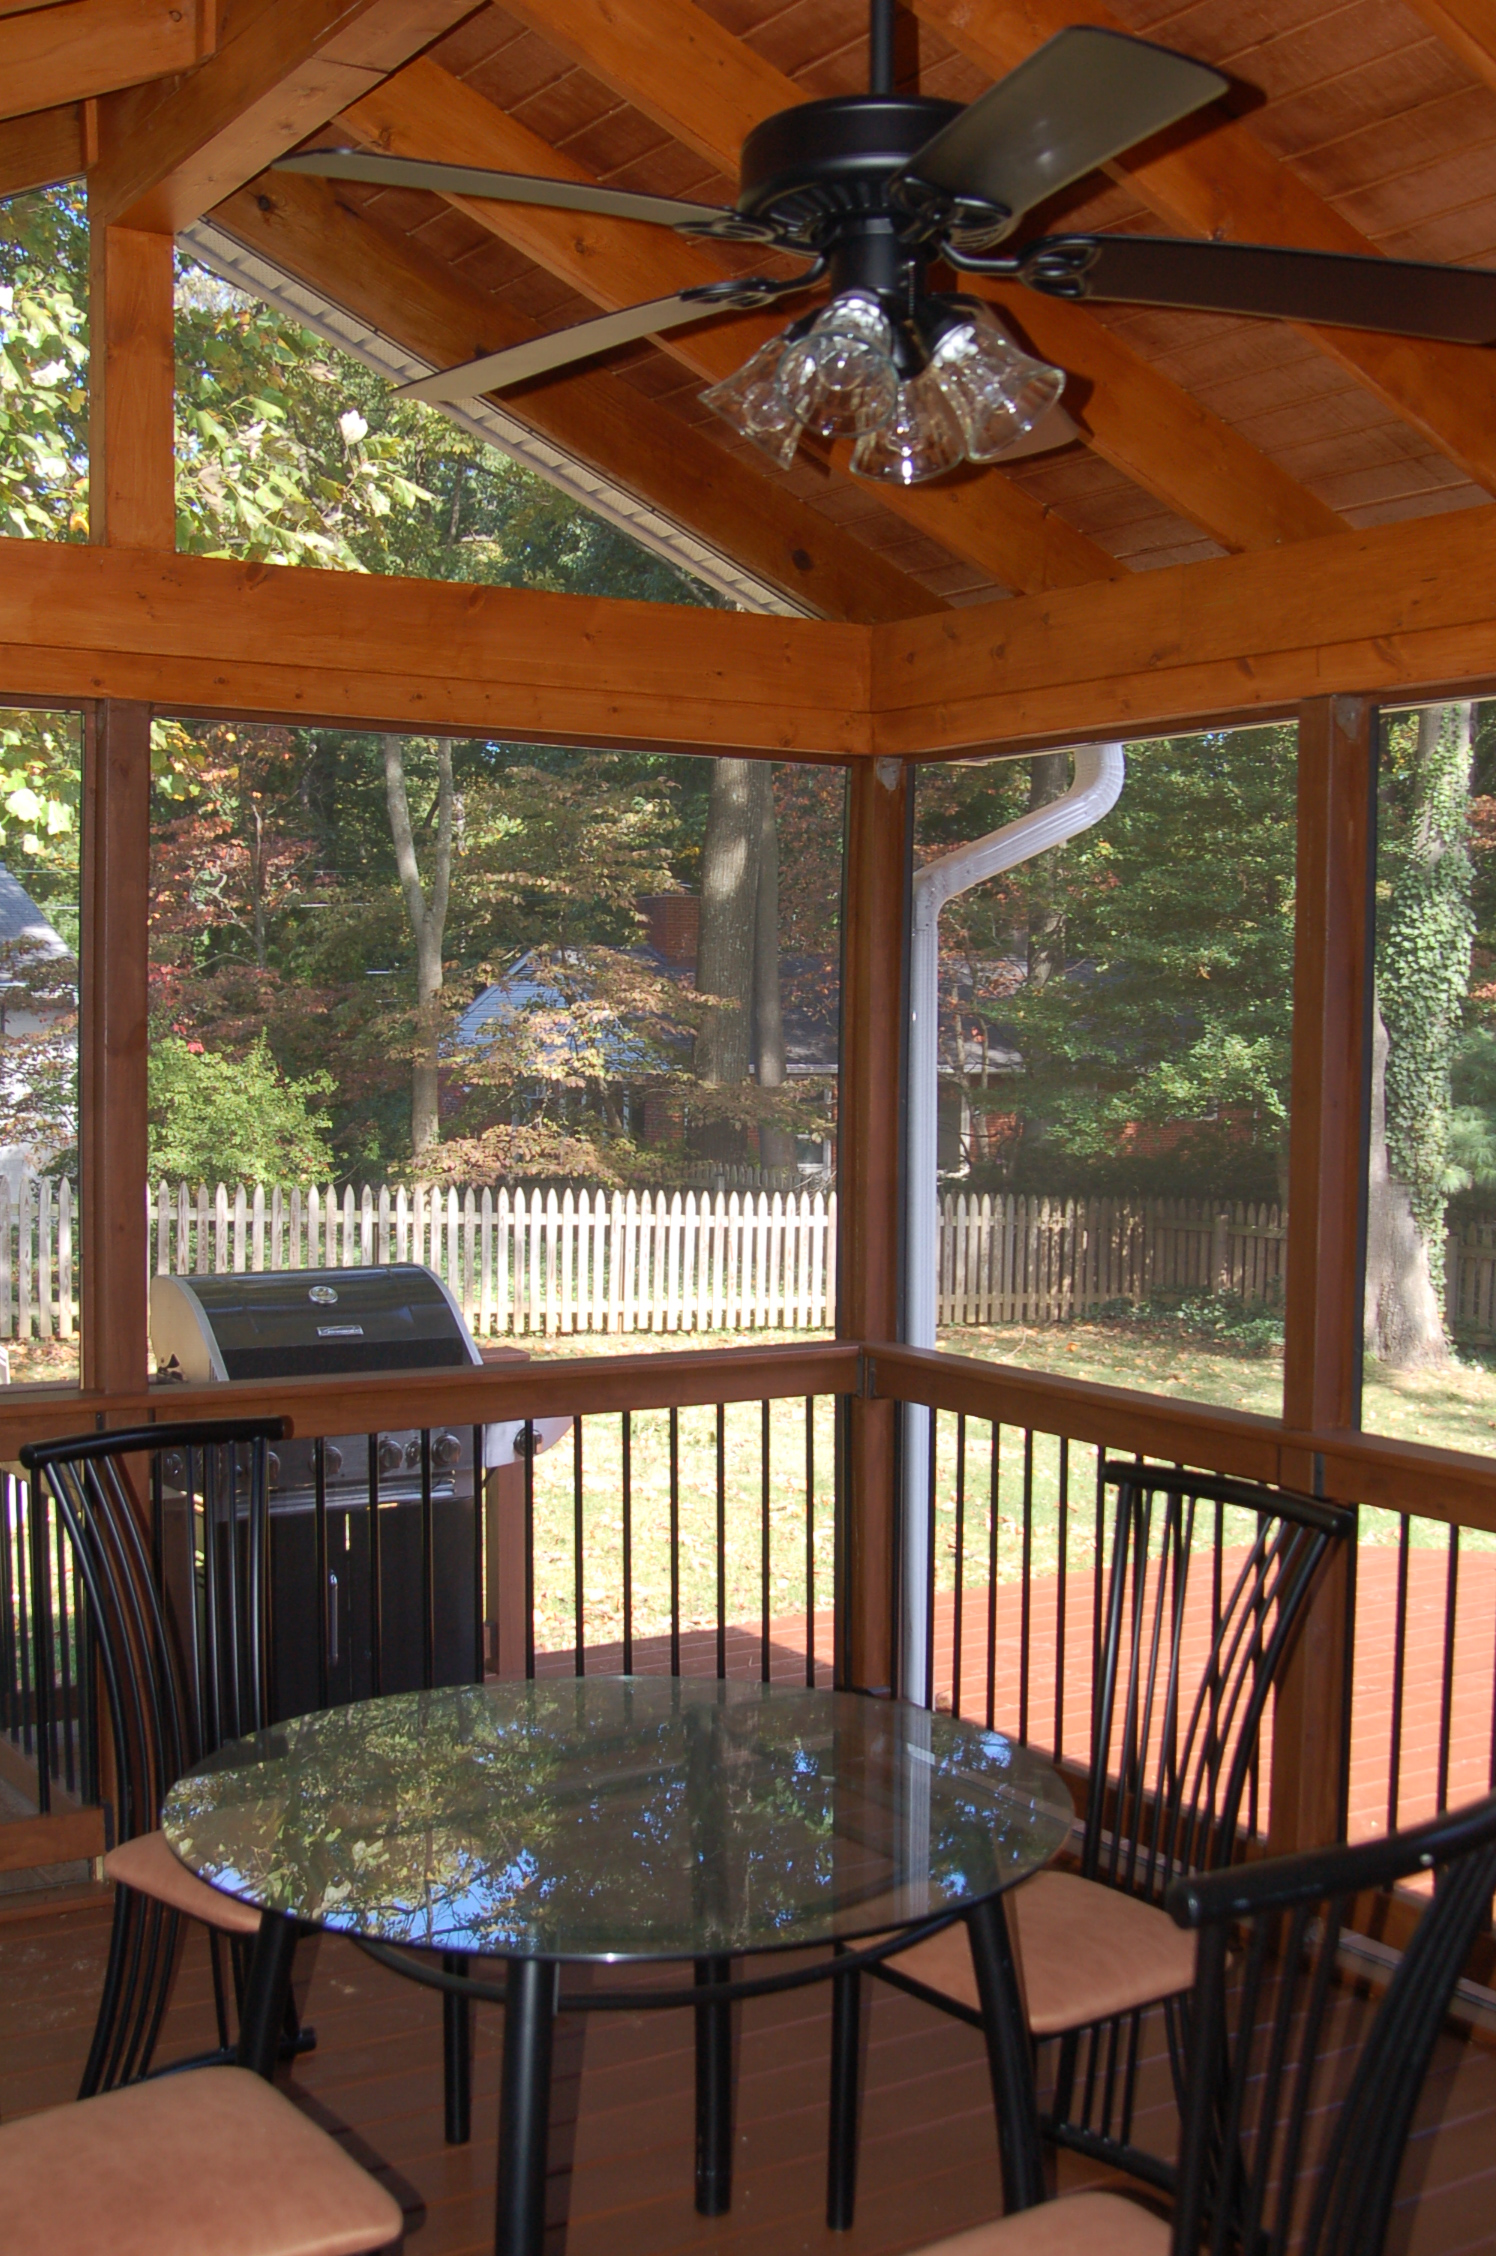 Used Kitchen Cabinets Maryland Screen Room In Bethesda Maryland With A Natural Hardwood Deck